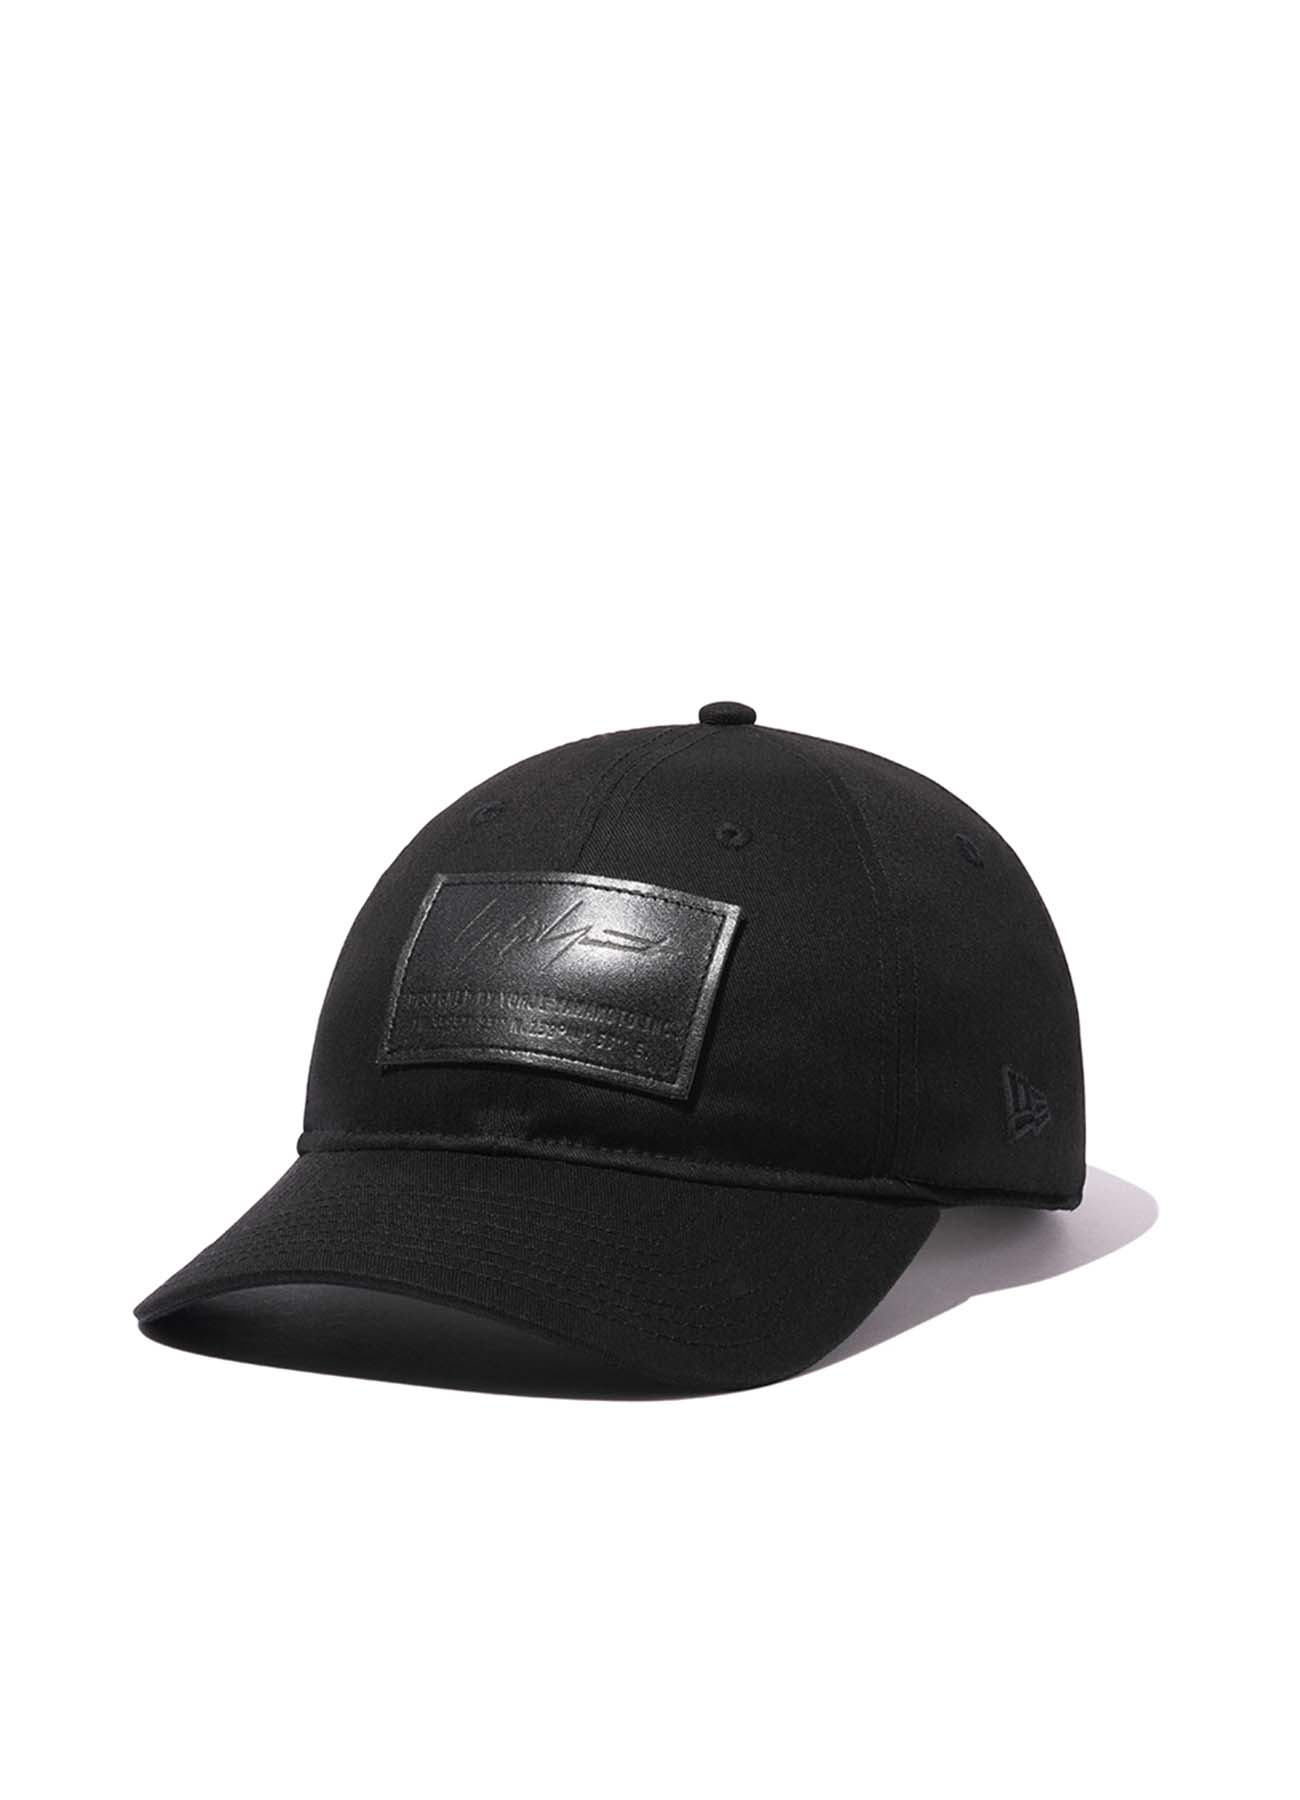 Yohji Yamamoto × New Era 9THIRTY BLACK COTTON LEATHER PATCH BLACK